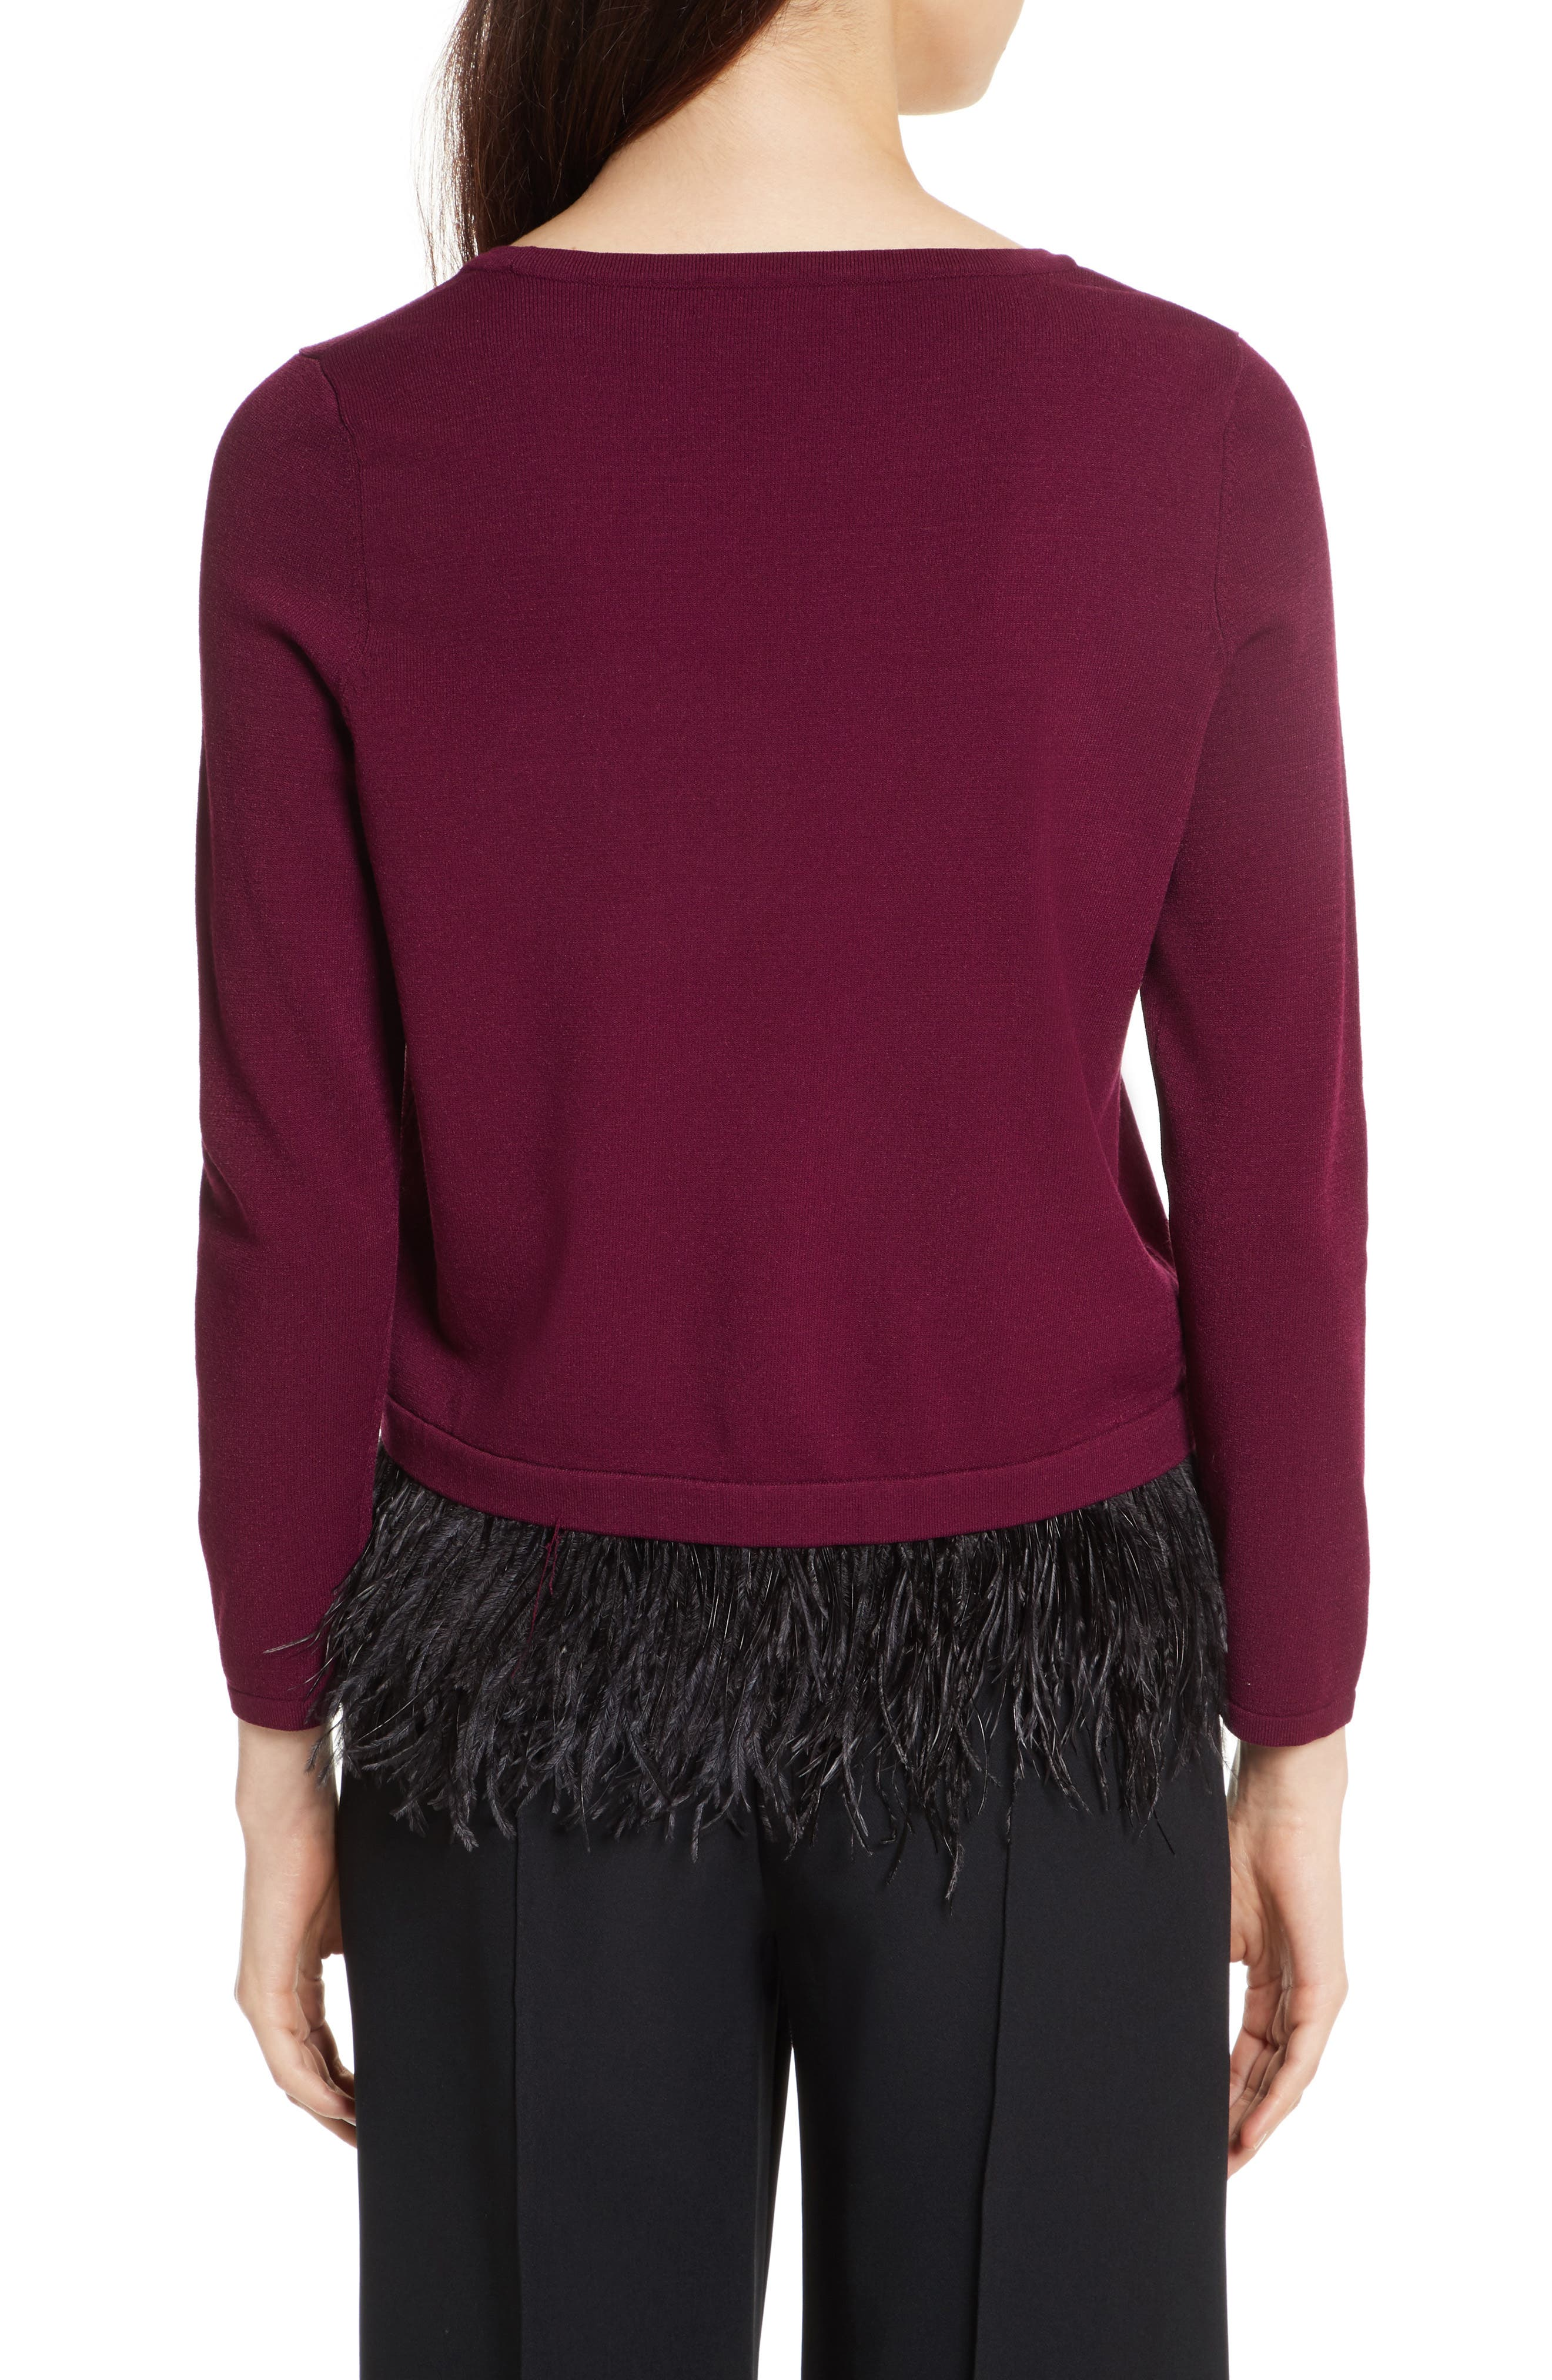 Feather Trim Sweater,                             Alternate thumbnail 2, color,                             931